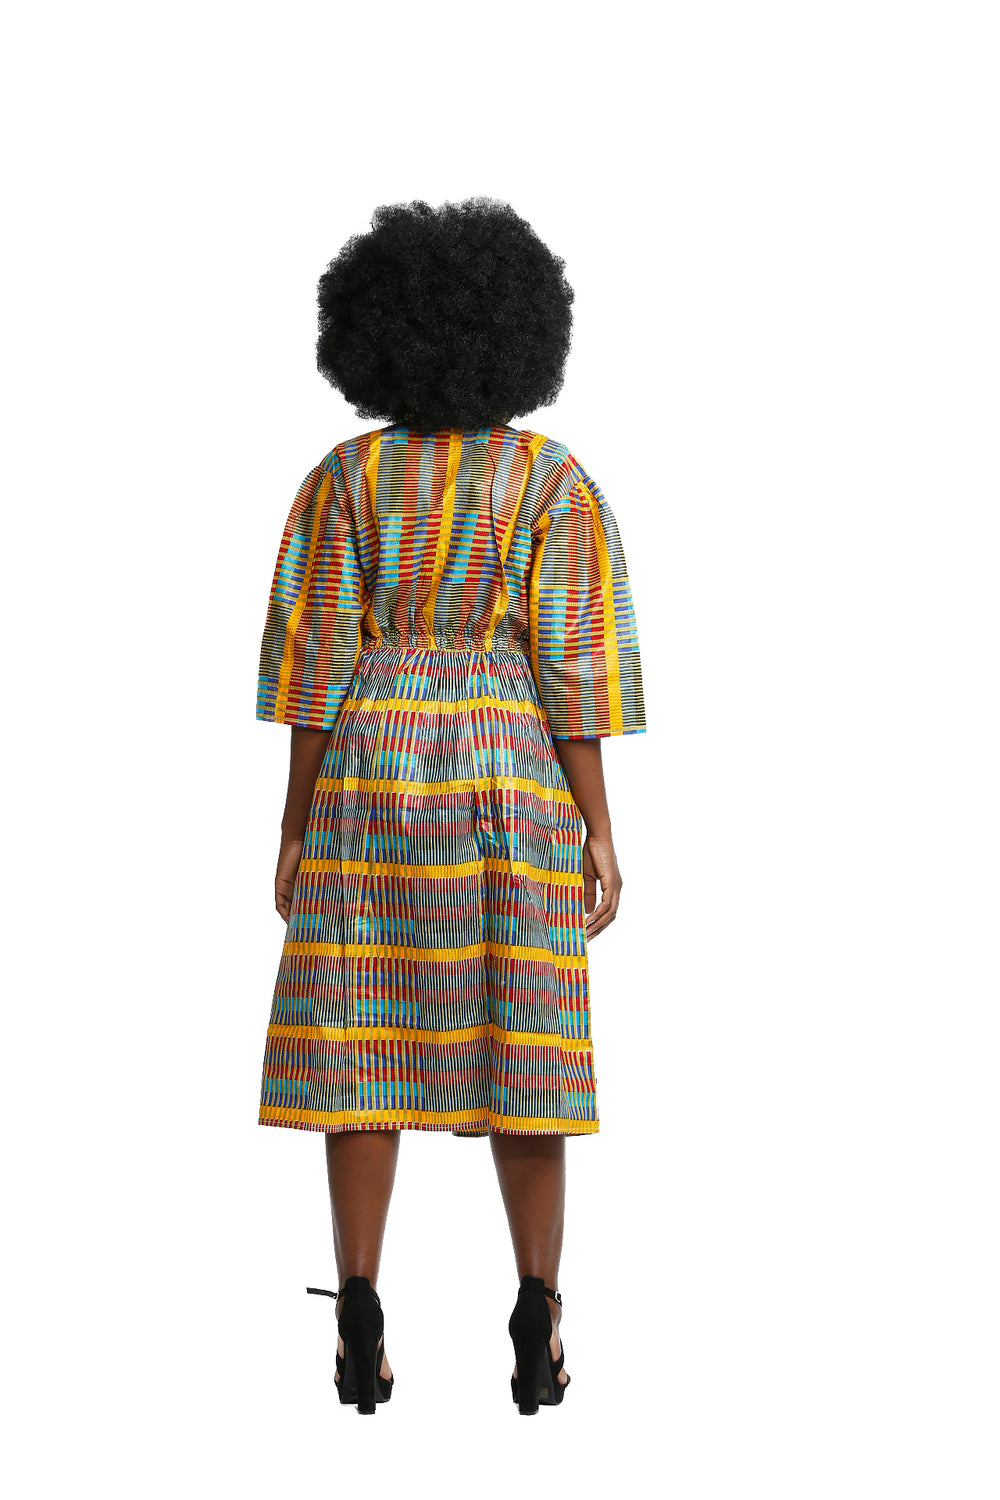 Prideful Woman Quarter Sleeve - Dress Nolafrique African Print Dress